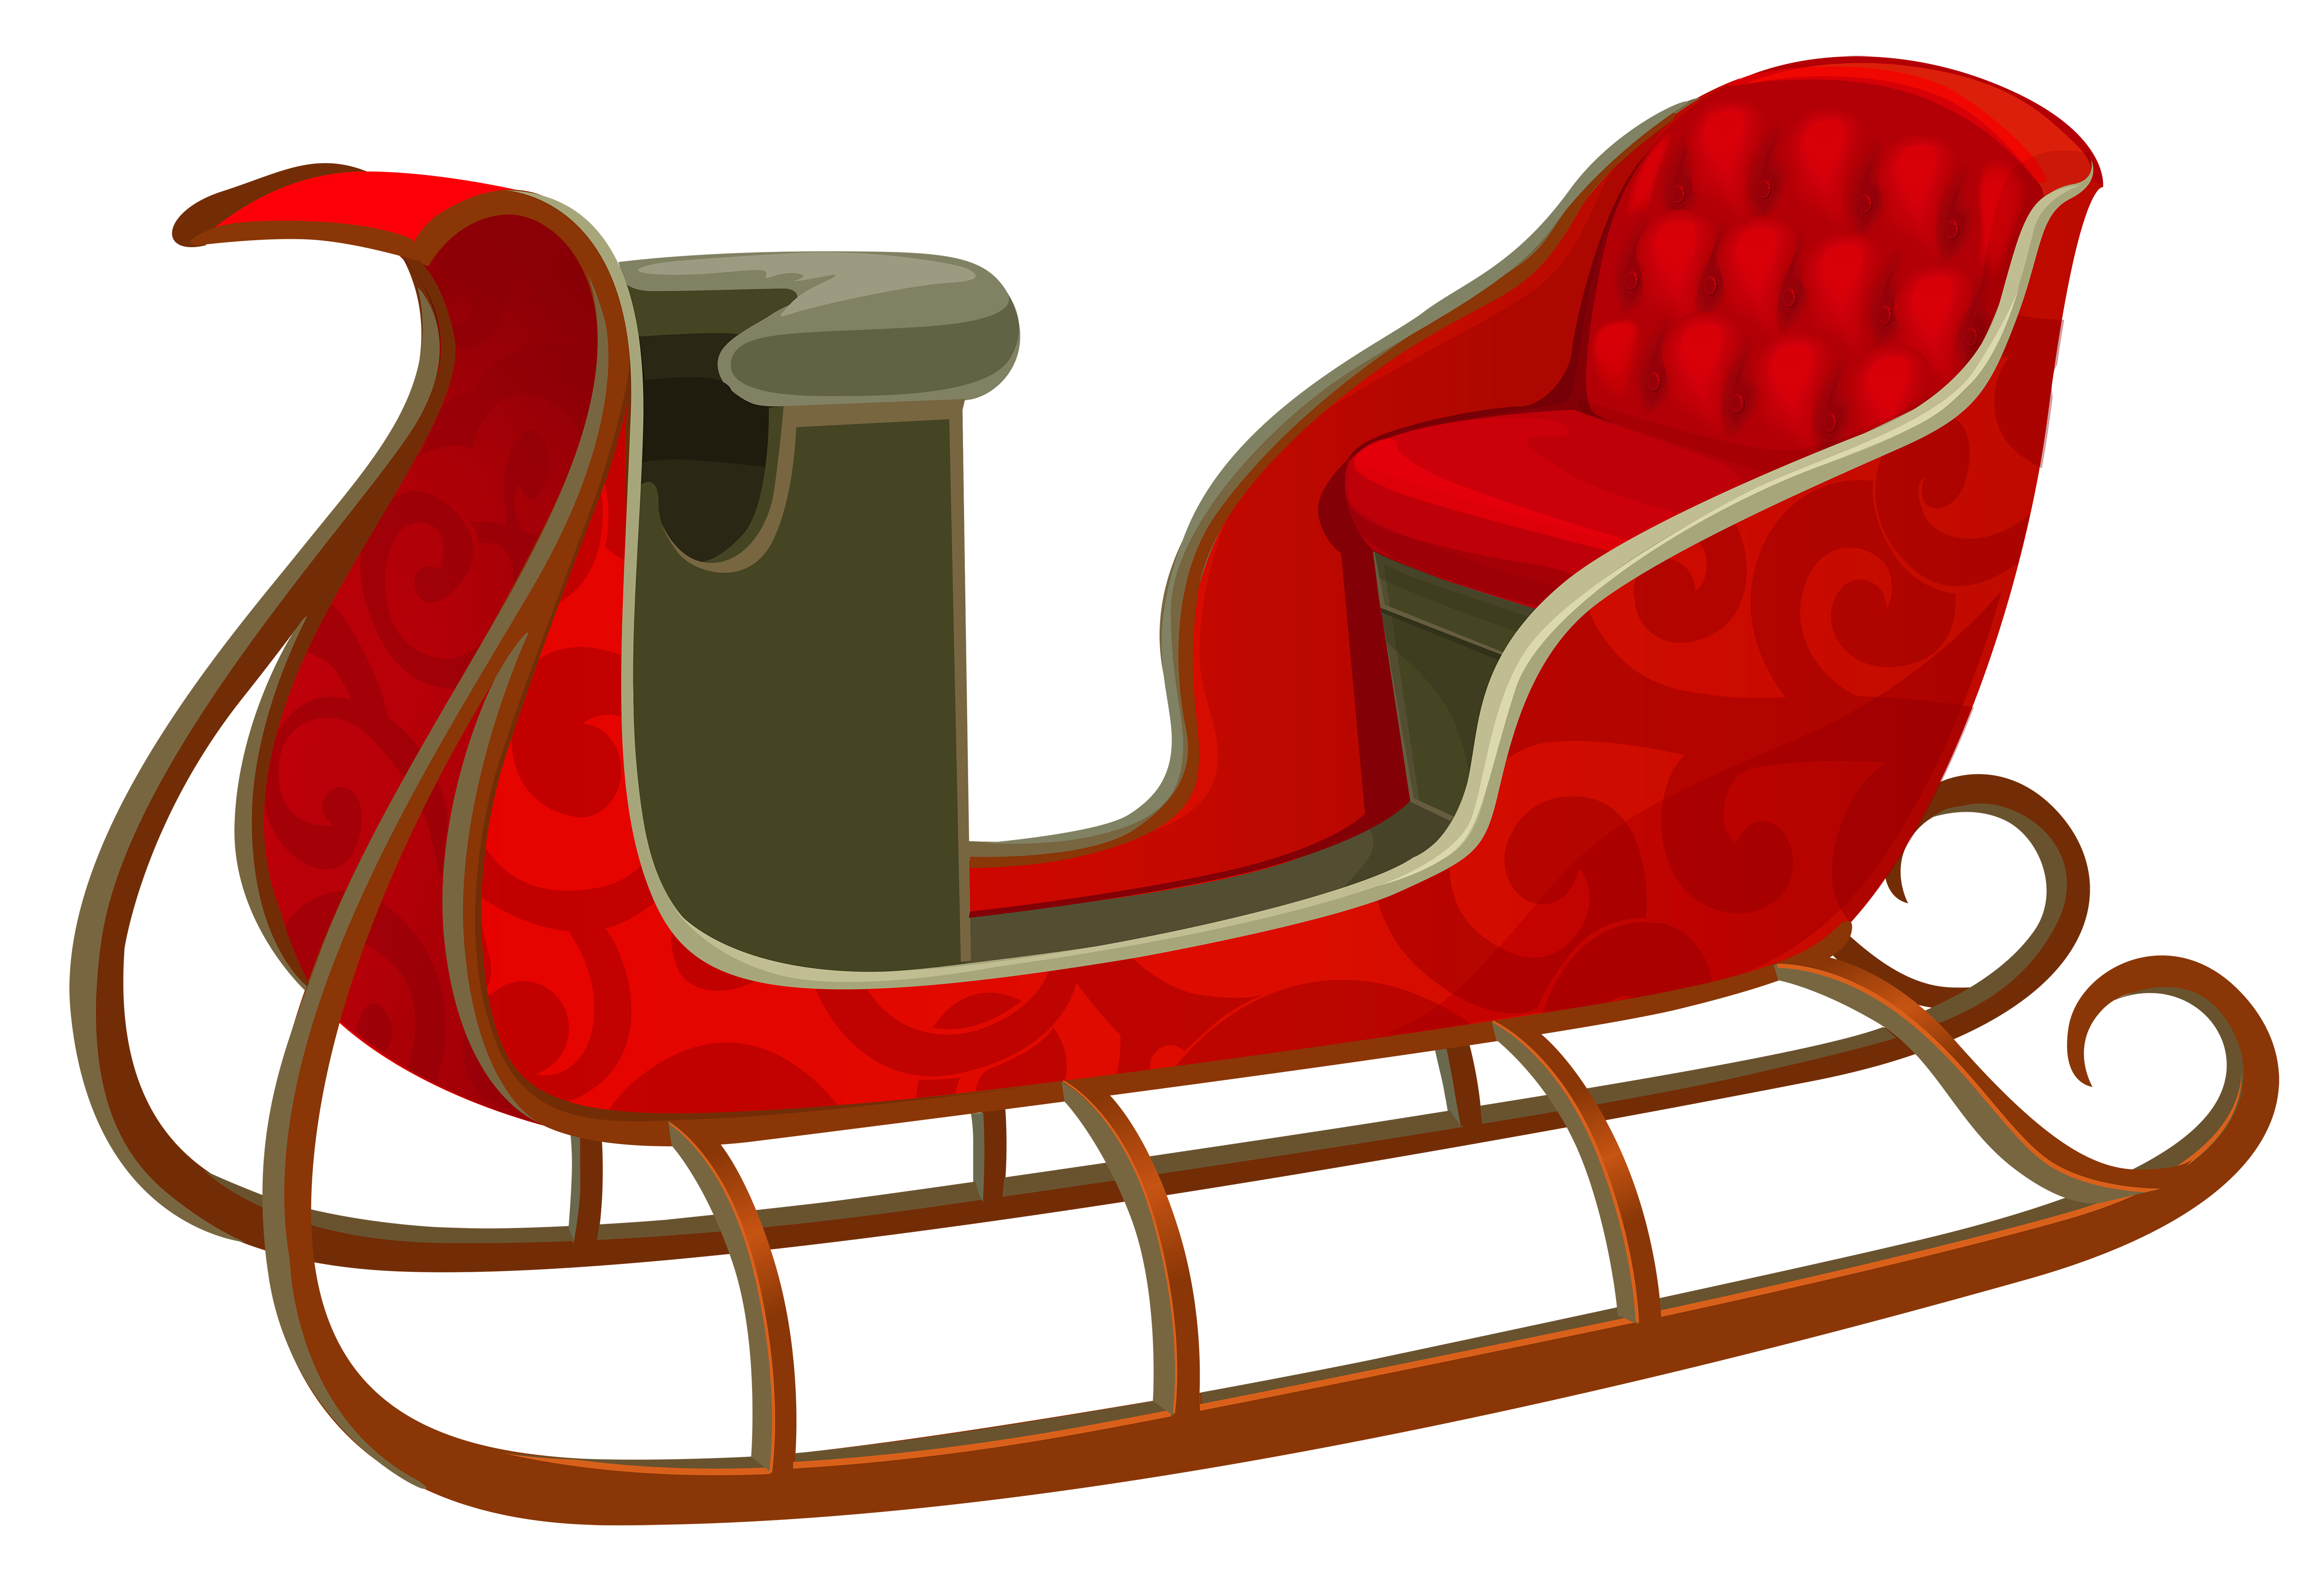 Sledding clipart transparent background. Christmas red sled png